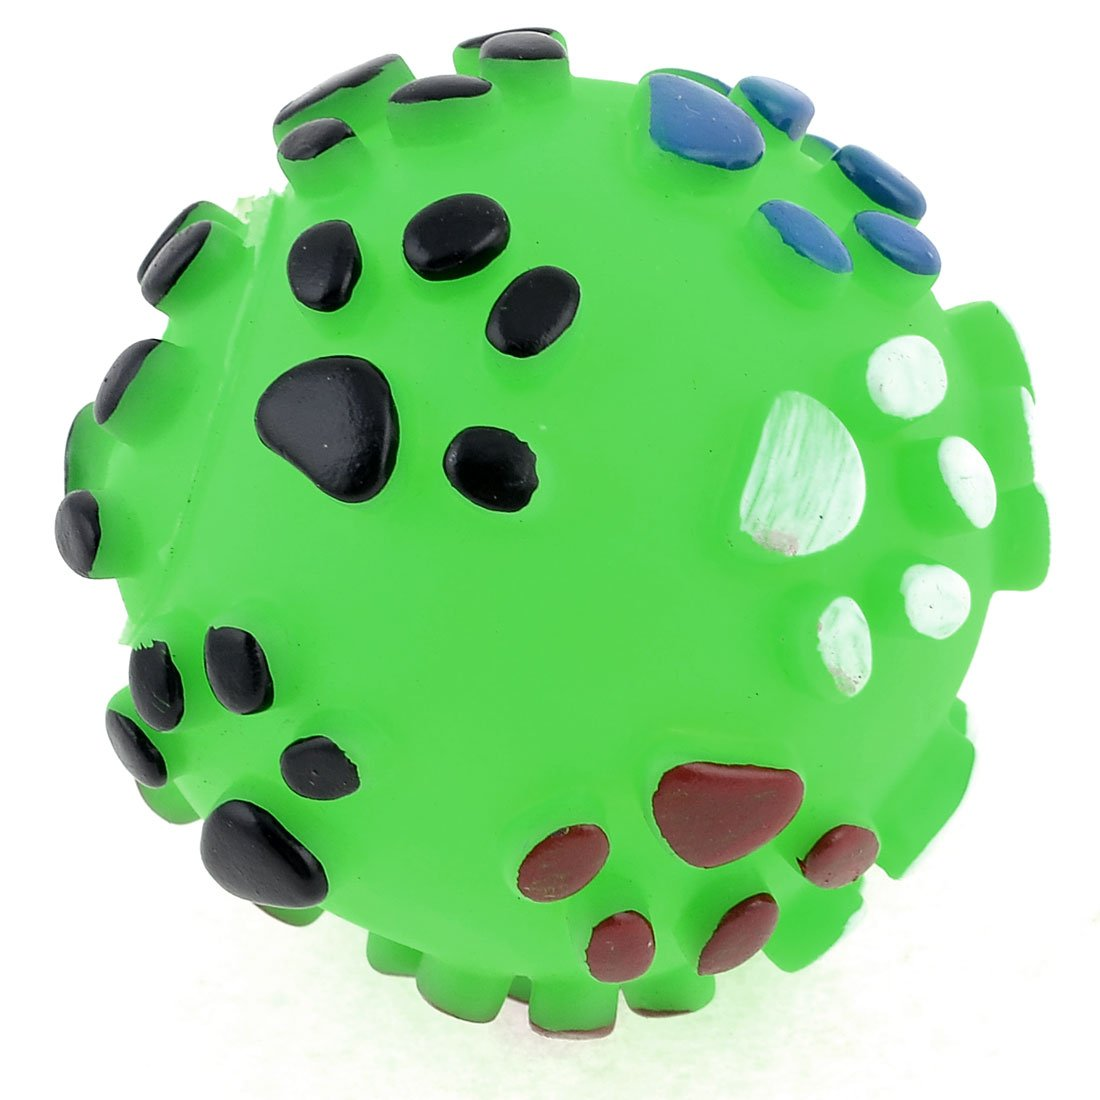 Green Rubber Paw Pattern Round Ball Squeaky Toy For Pet